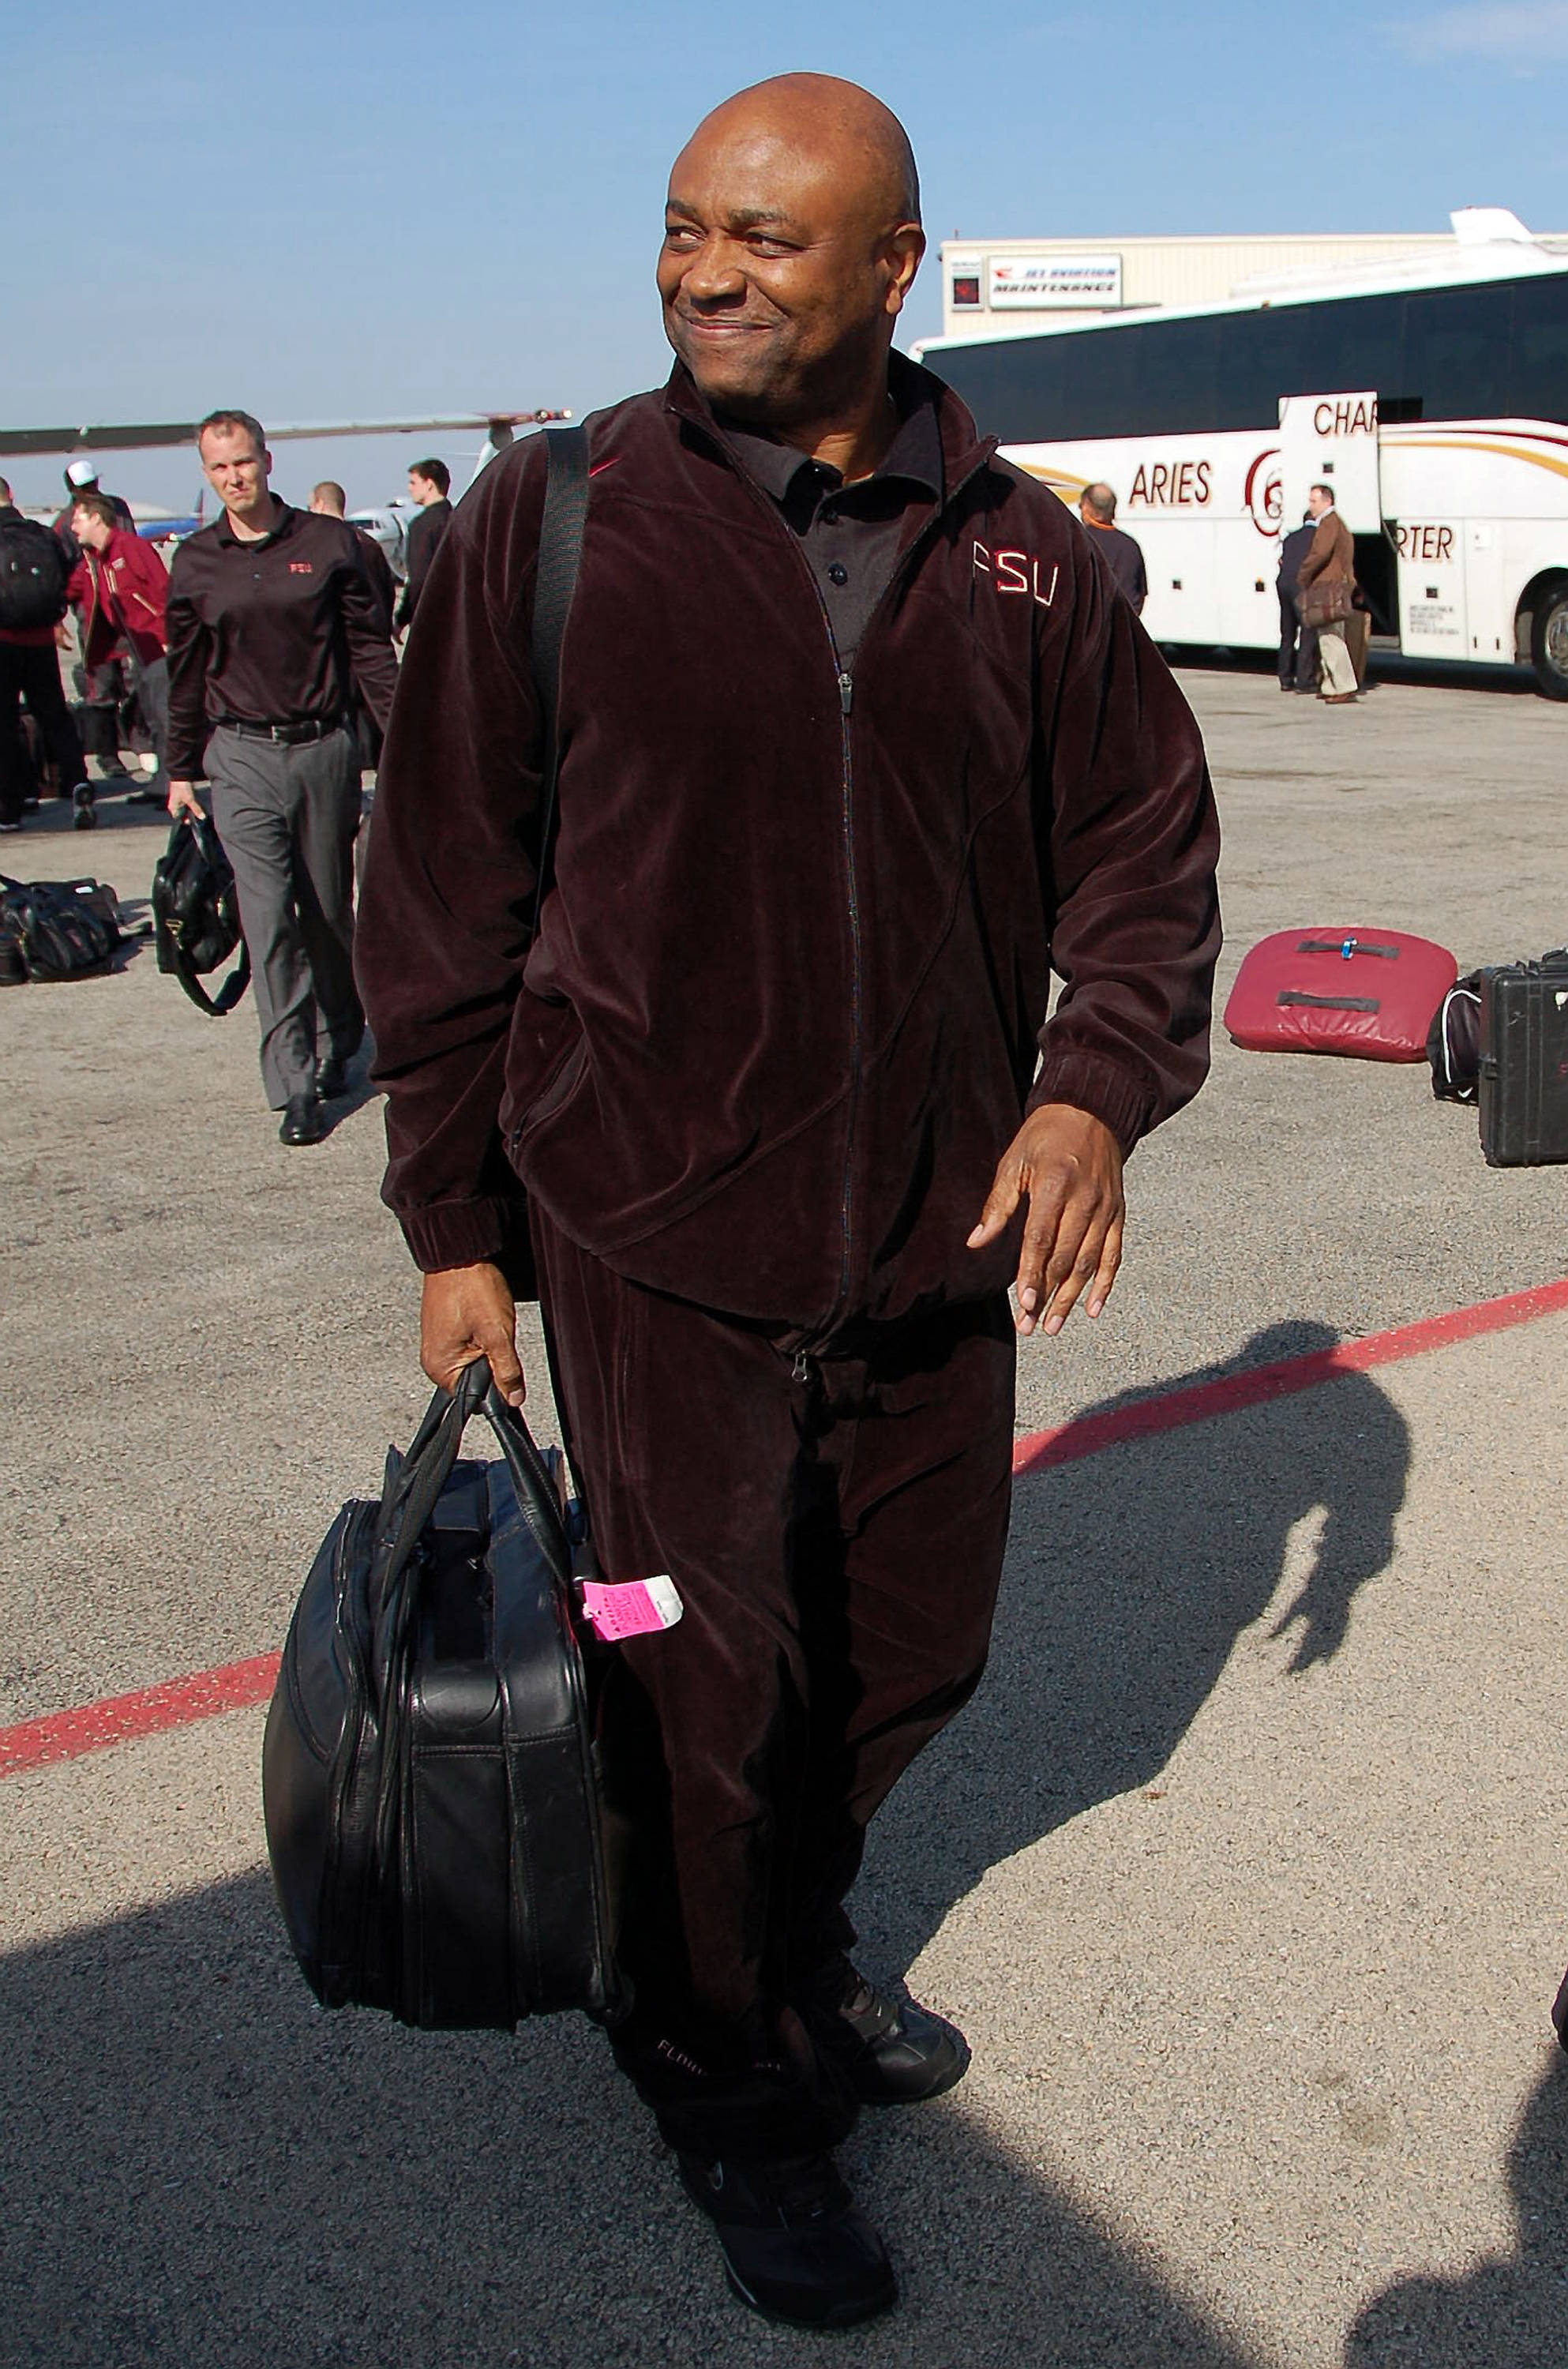 Leonard Hamilton walks to the bus in Chicago